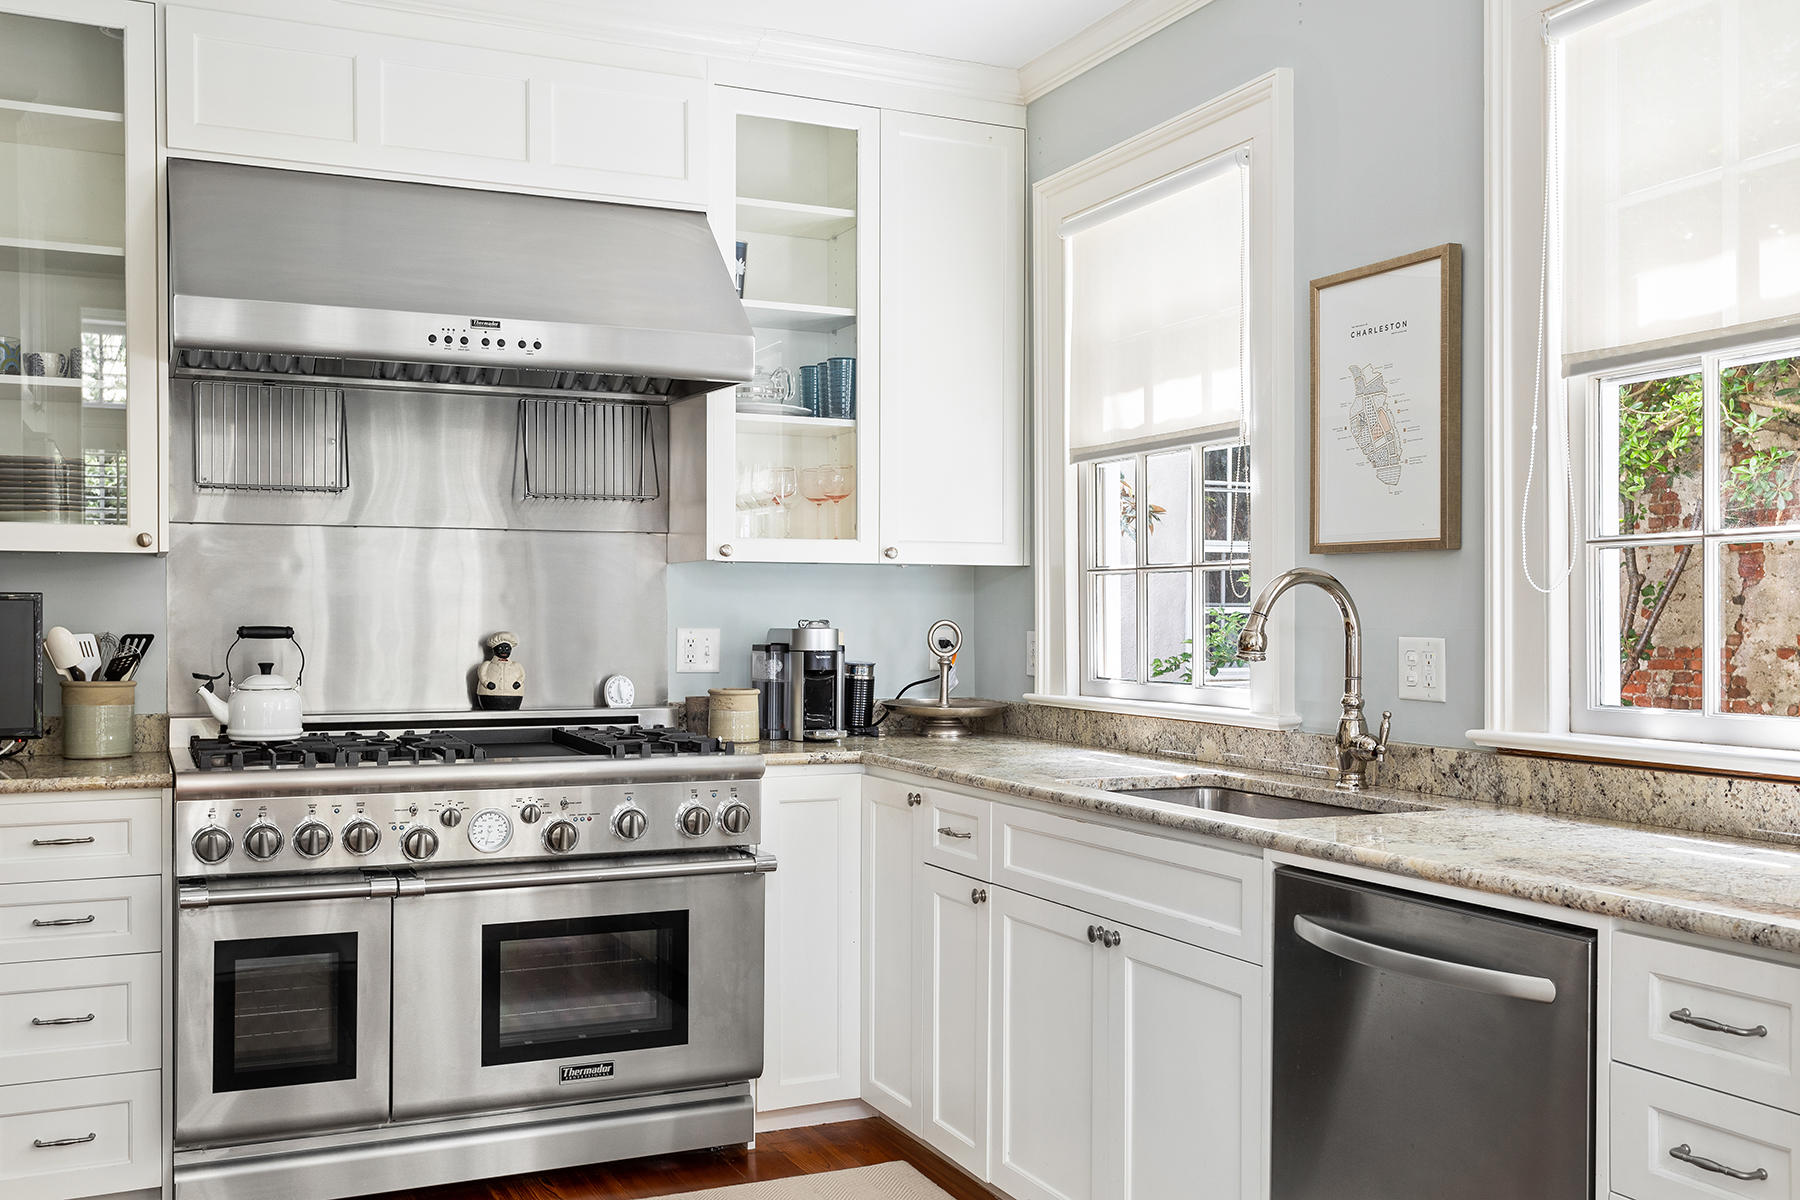 South of Broad Homes For Sale - 3 Atlantic, Charleston, SC - 2